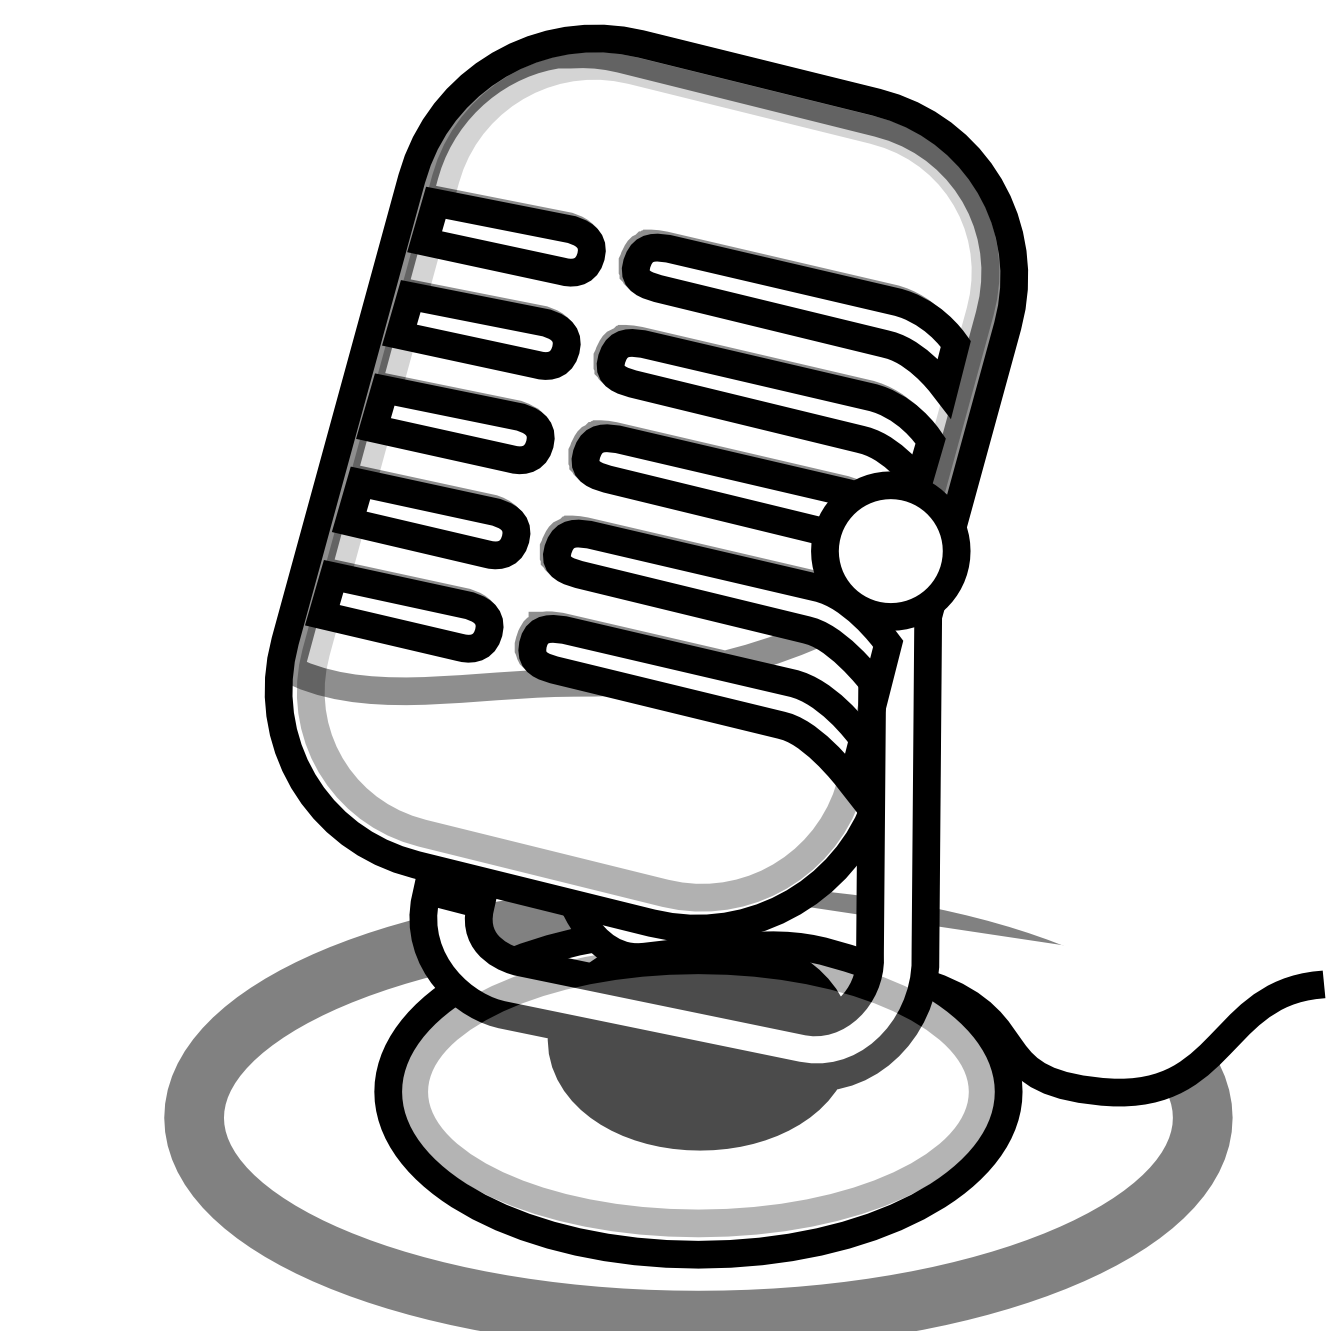 Microphone clipart source information #3